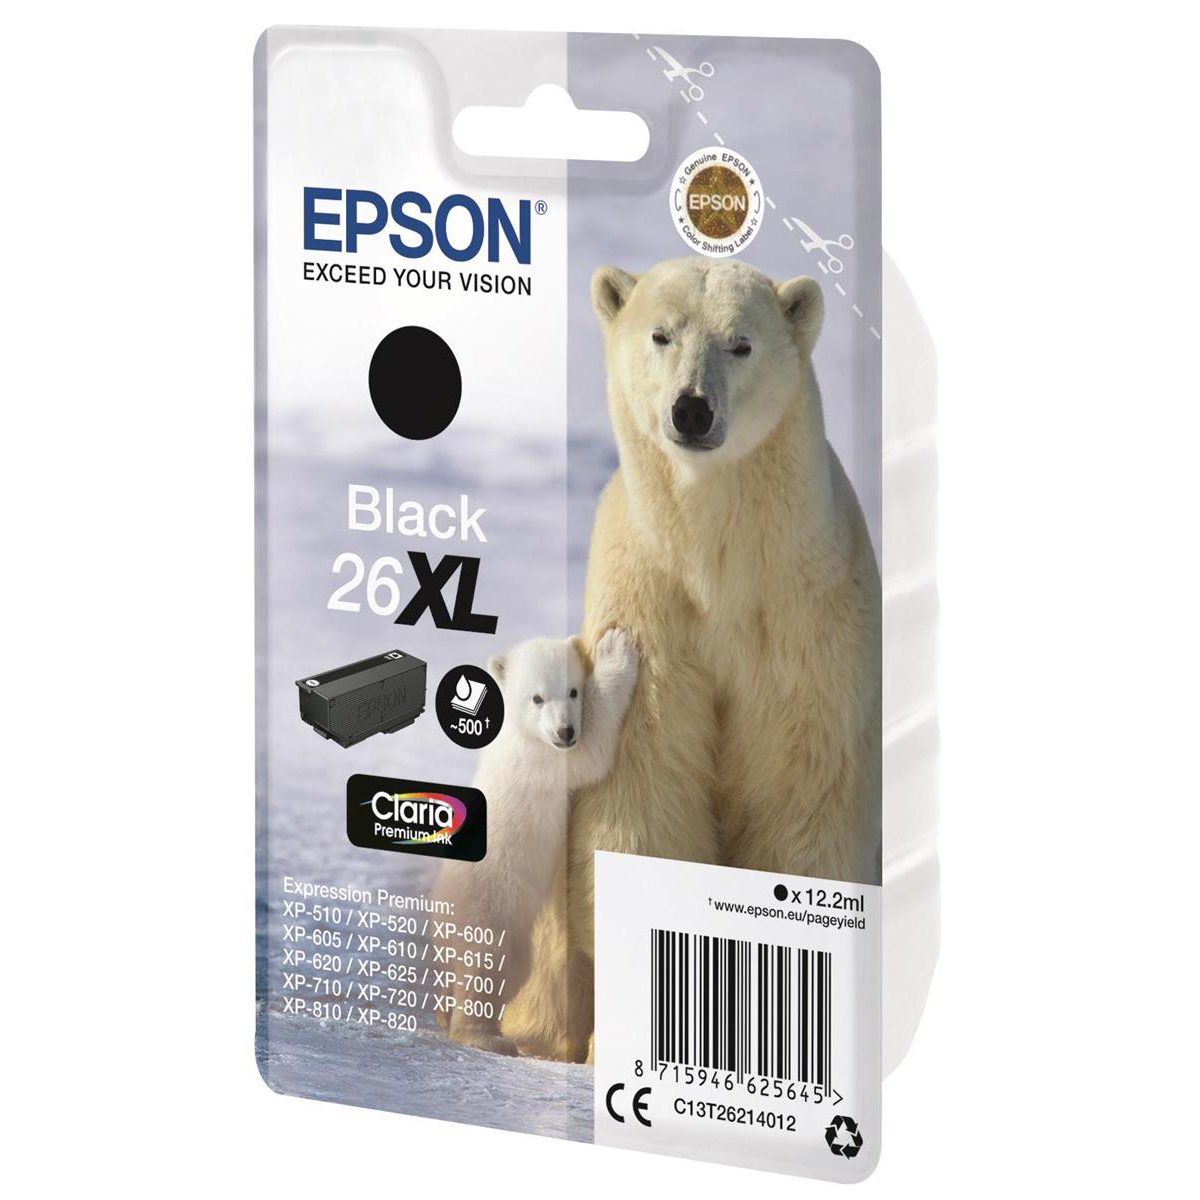 Epson 26XL Inkjet Cartridge Polar Bear High Yield Page Life 500pp 12.2ml Black Ref C13T26214012